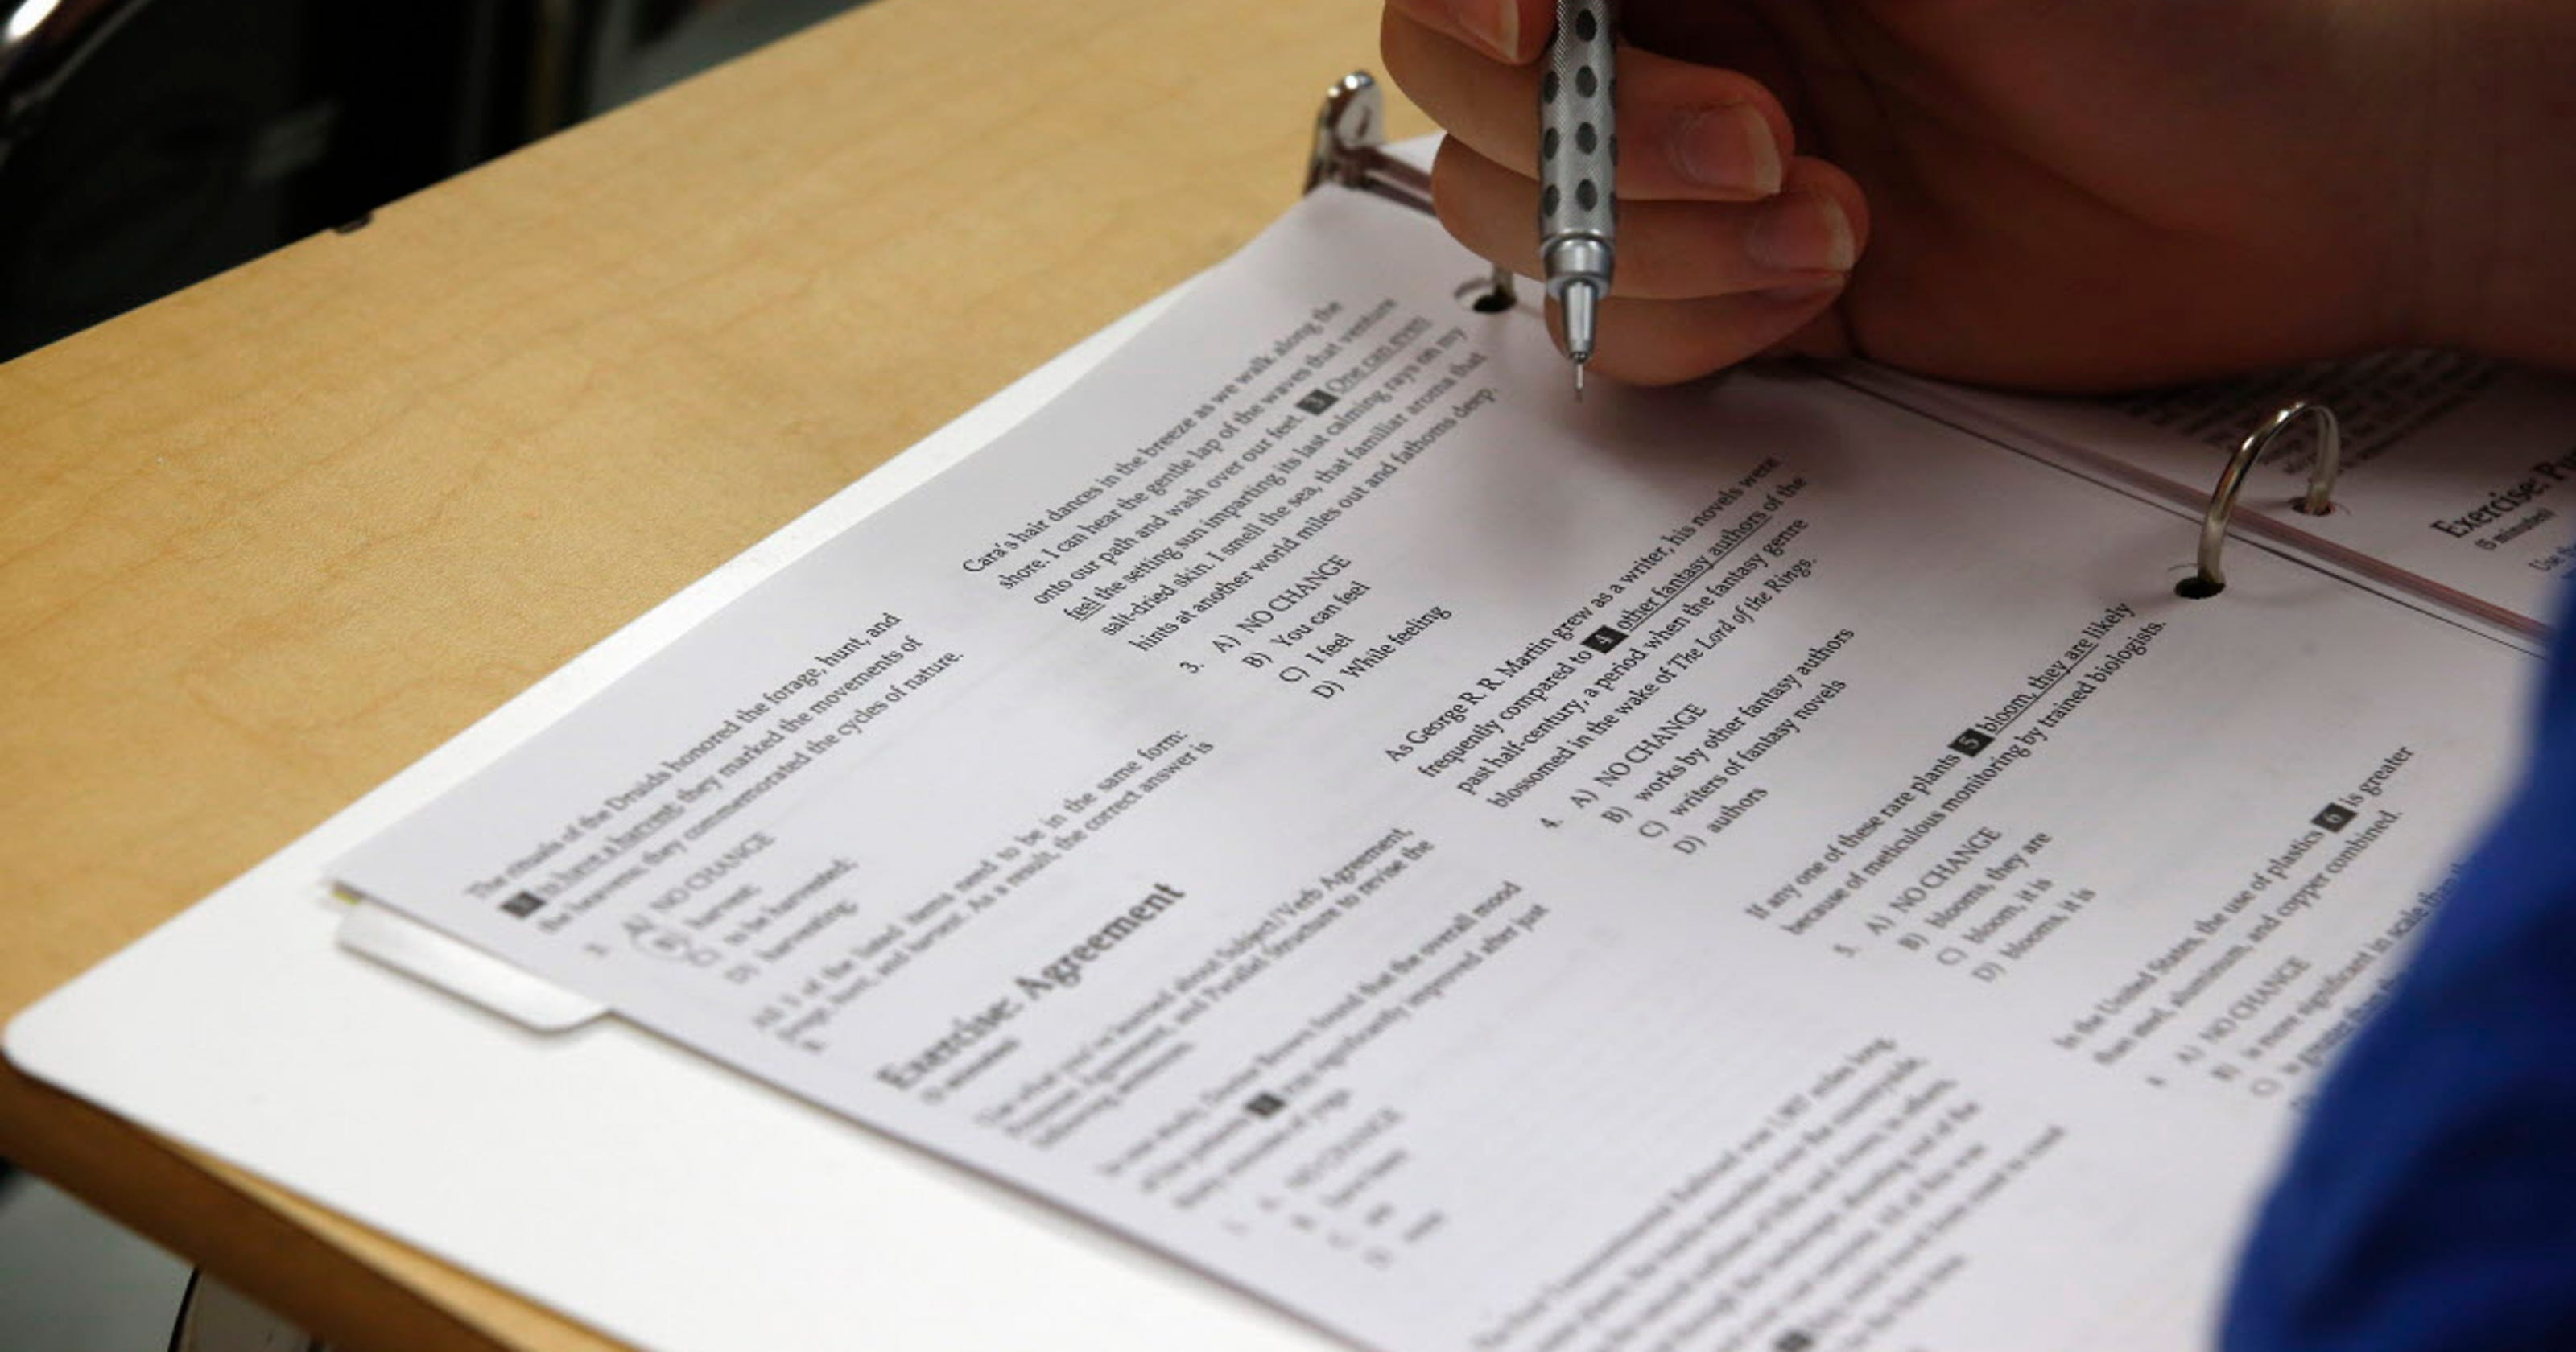 Was August SAT test leaked? Students fret about test's integrity